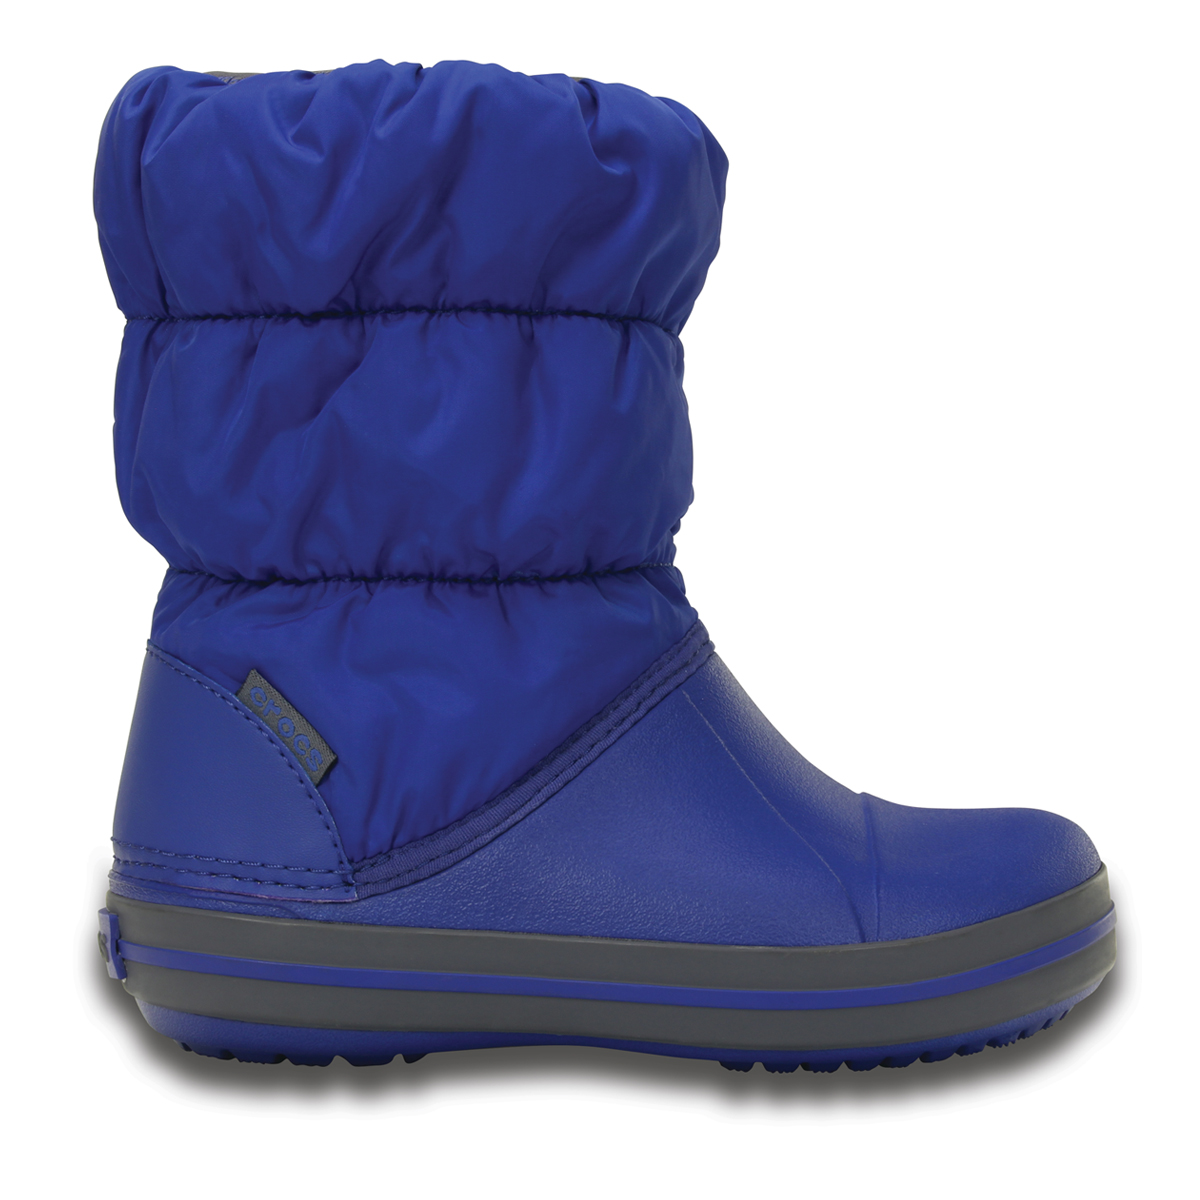 Winter Puff Boot Kids - Gök Mavisi/Açık Gri